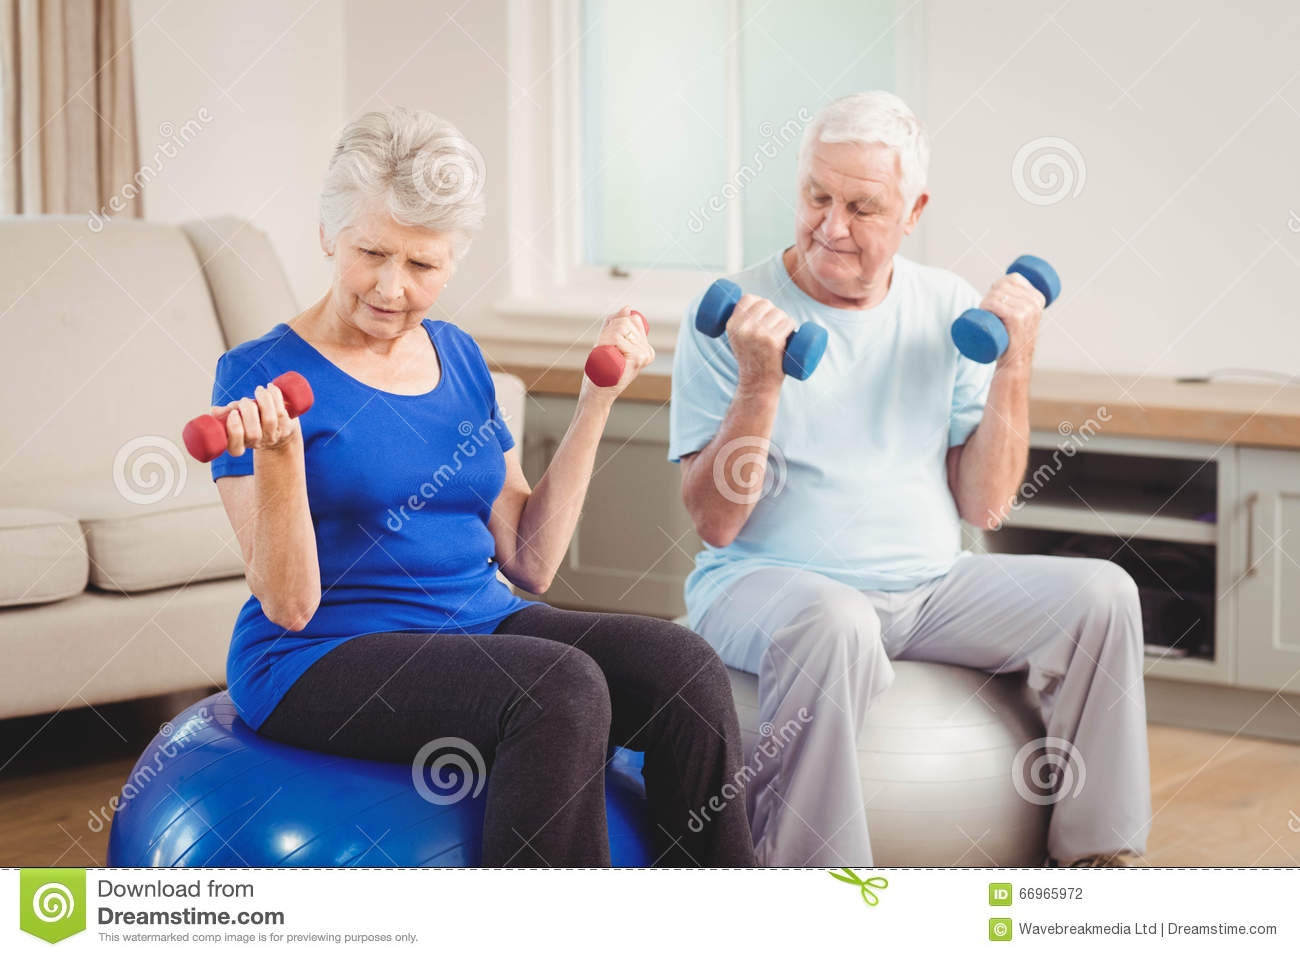 Download Senior Couple Sitting On Fitness Balls With Dumbbells Stock Photo - Image of clothing, hand: 66965972